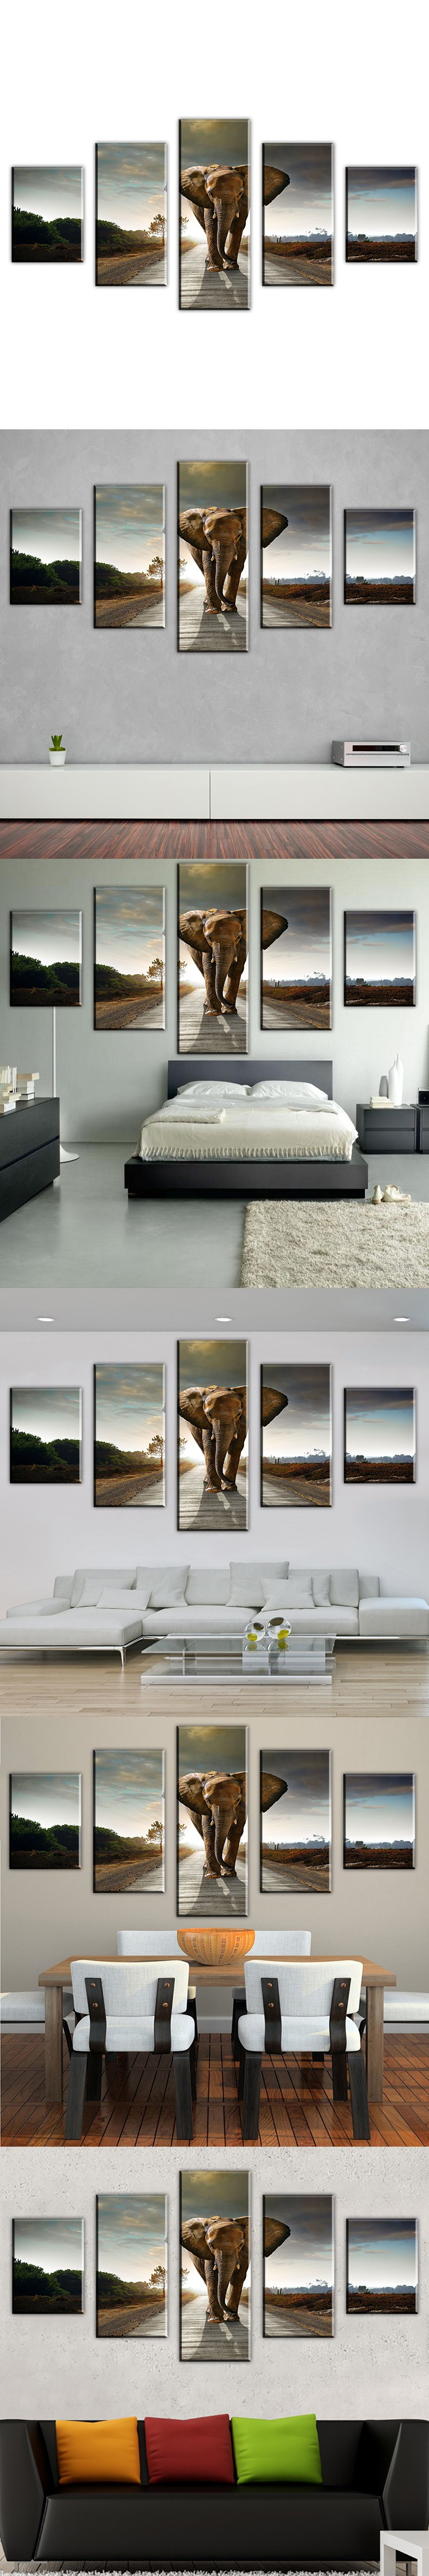 5 Ppcs Elephant Painting Wall Art Picture Home Decoration modern abstract Canvas Print Modern Painting Large Canvas Unframed $43